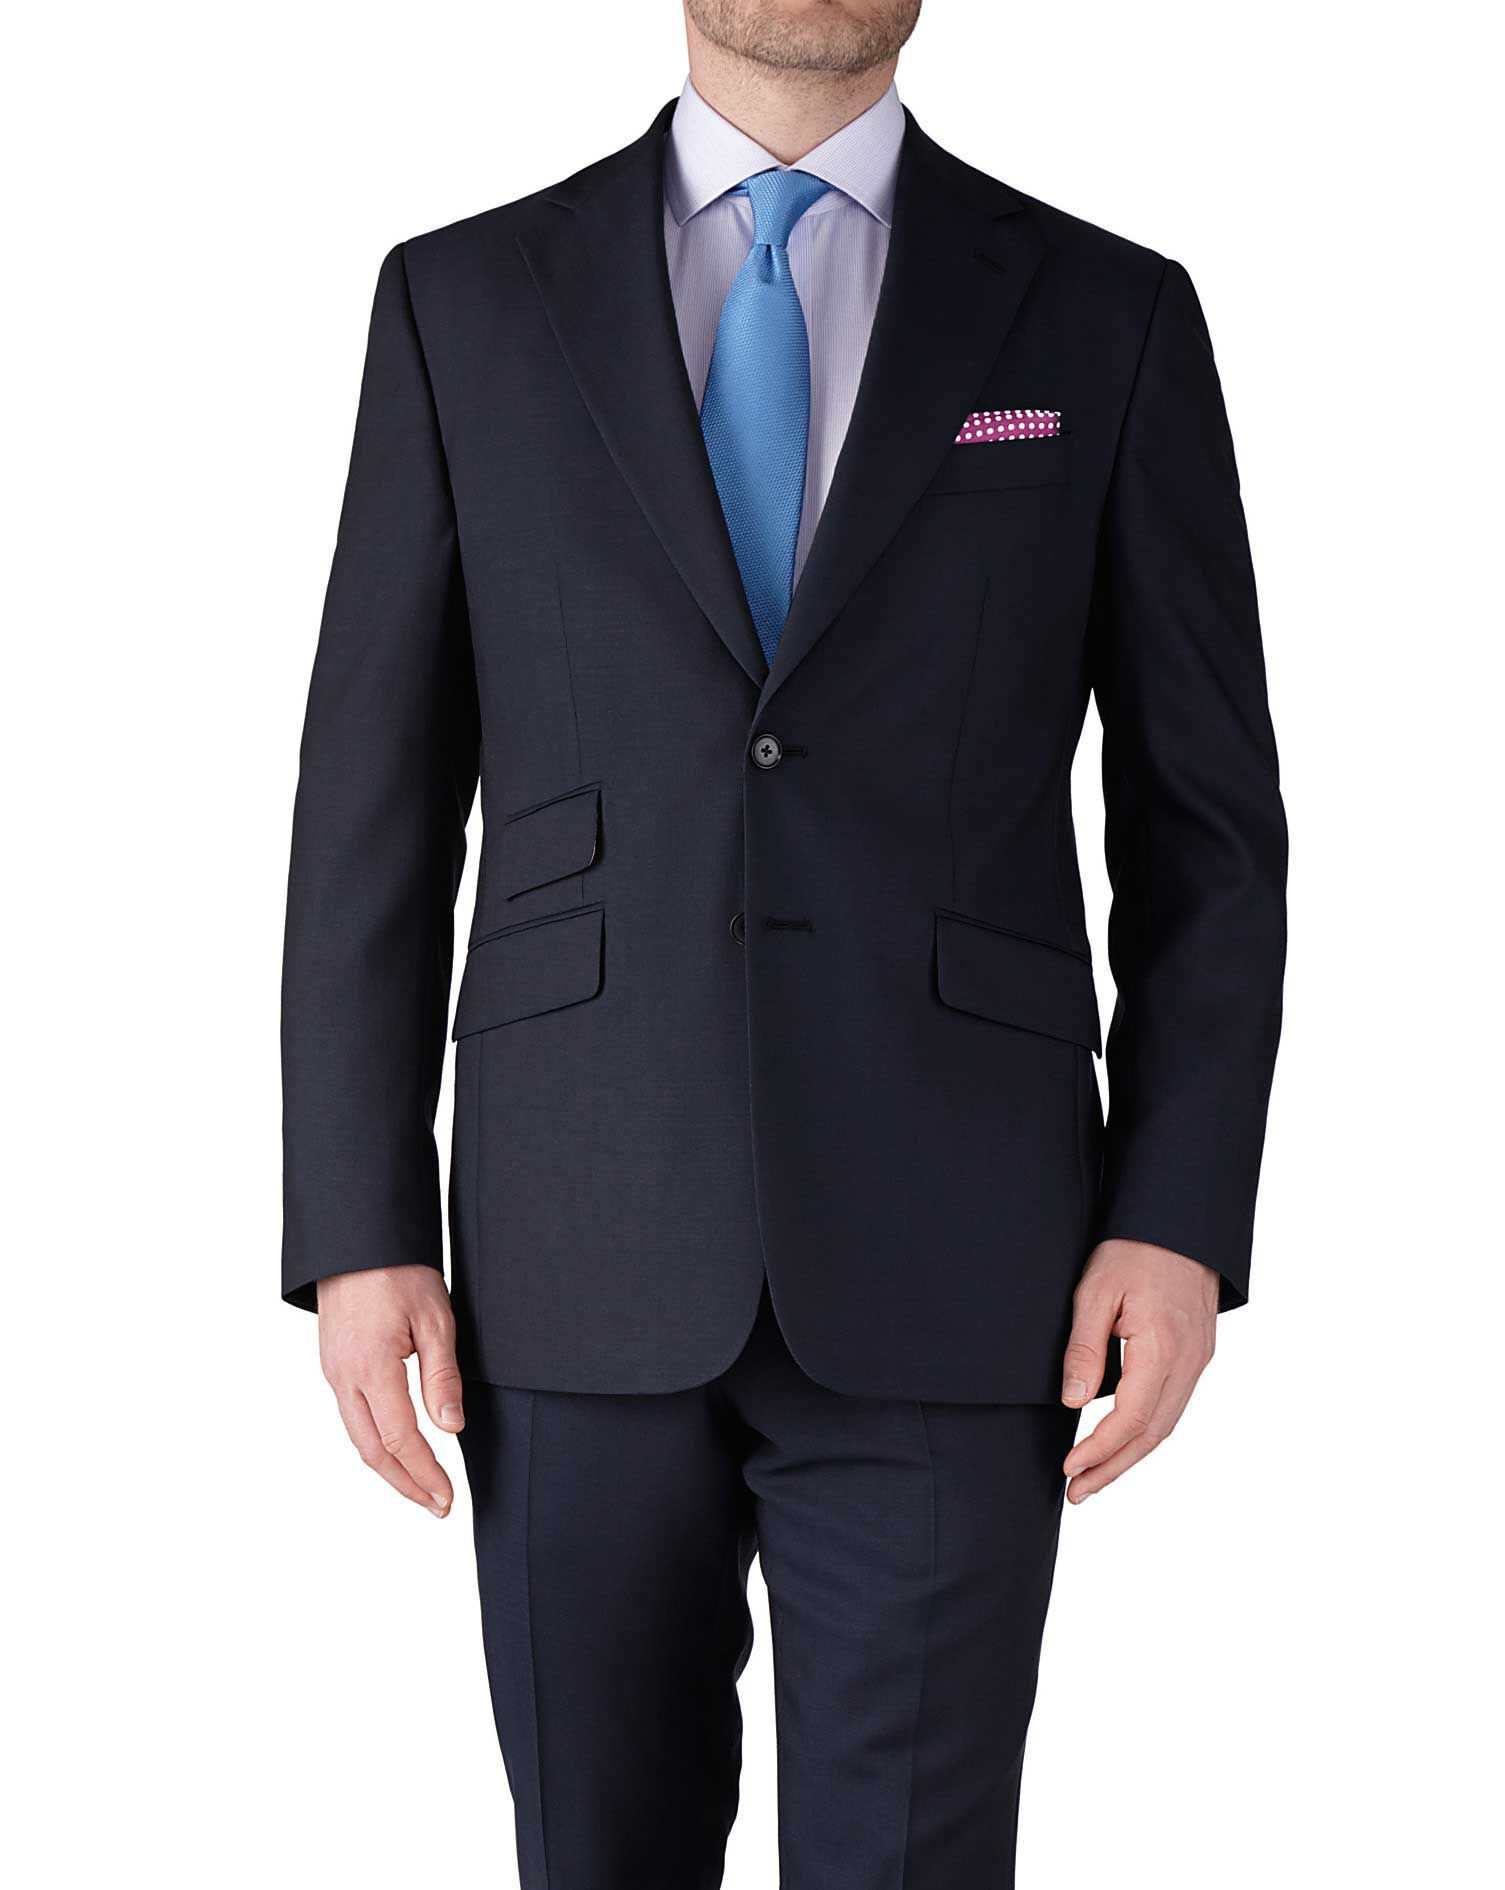 Navy Blue Slim Fit Basketweave Business Suit Trousers Size W30 L38 by Charles Tyrwhitt